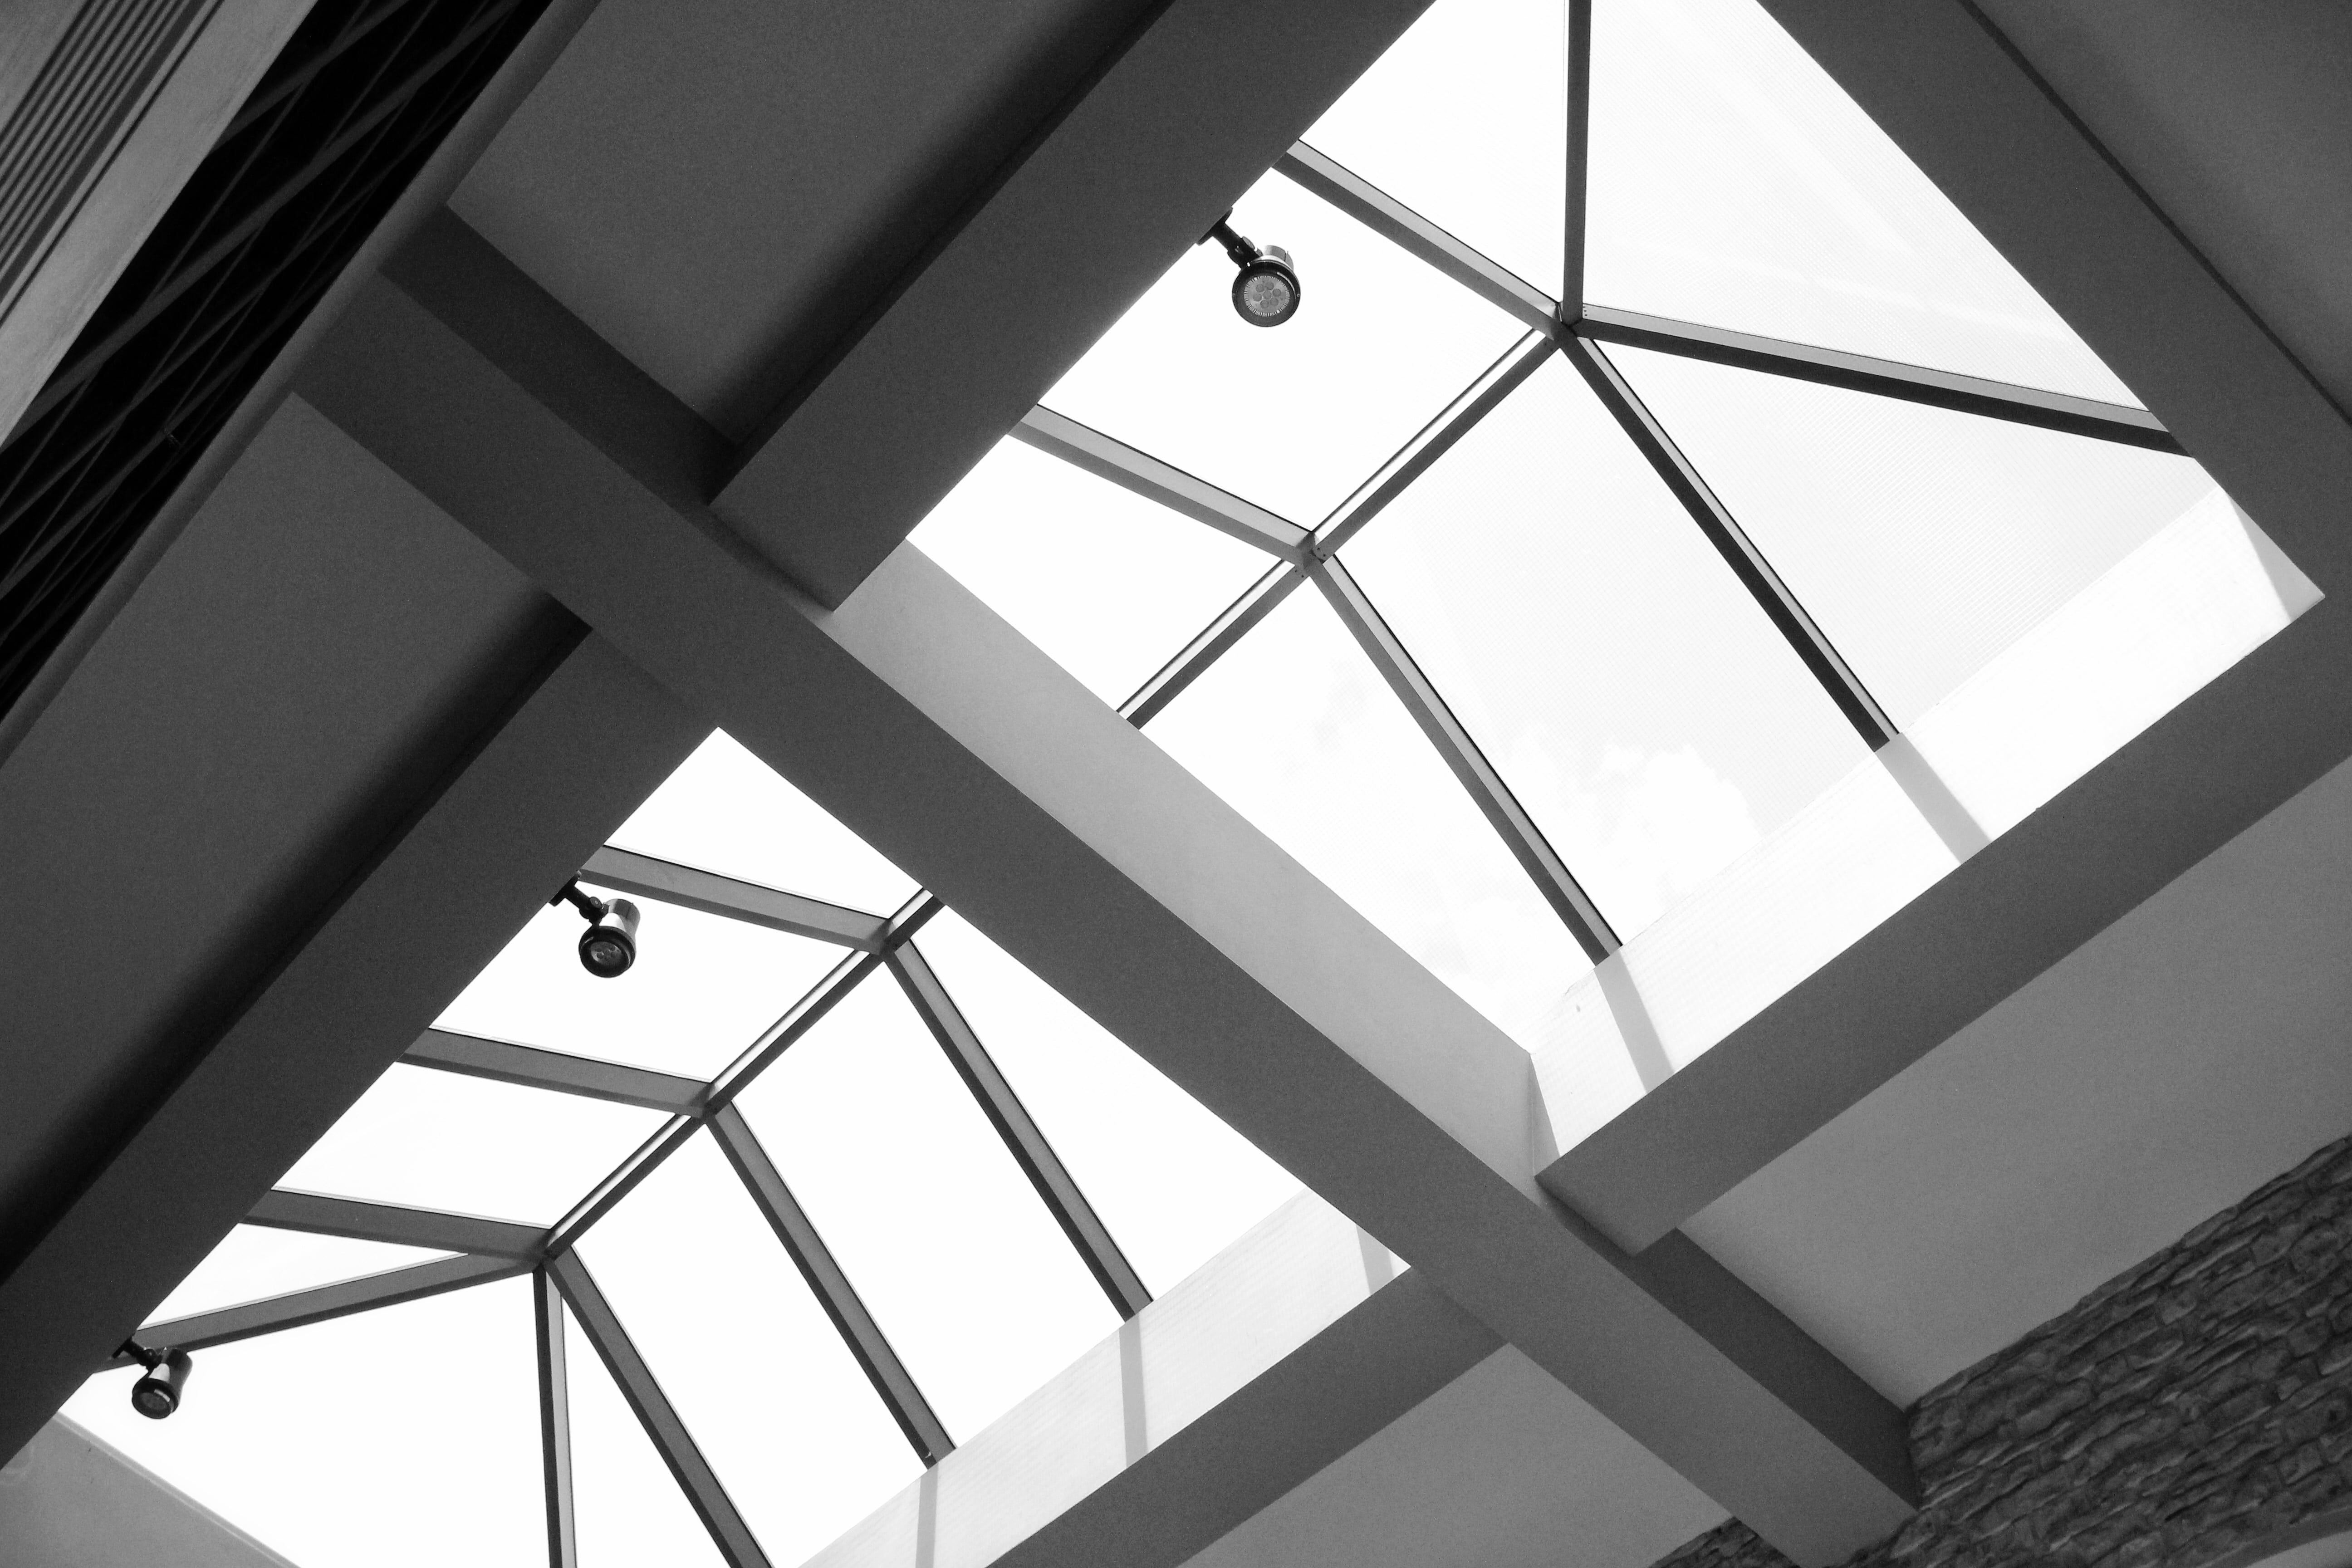 Lantern Roof Installers Coventry